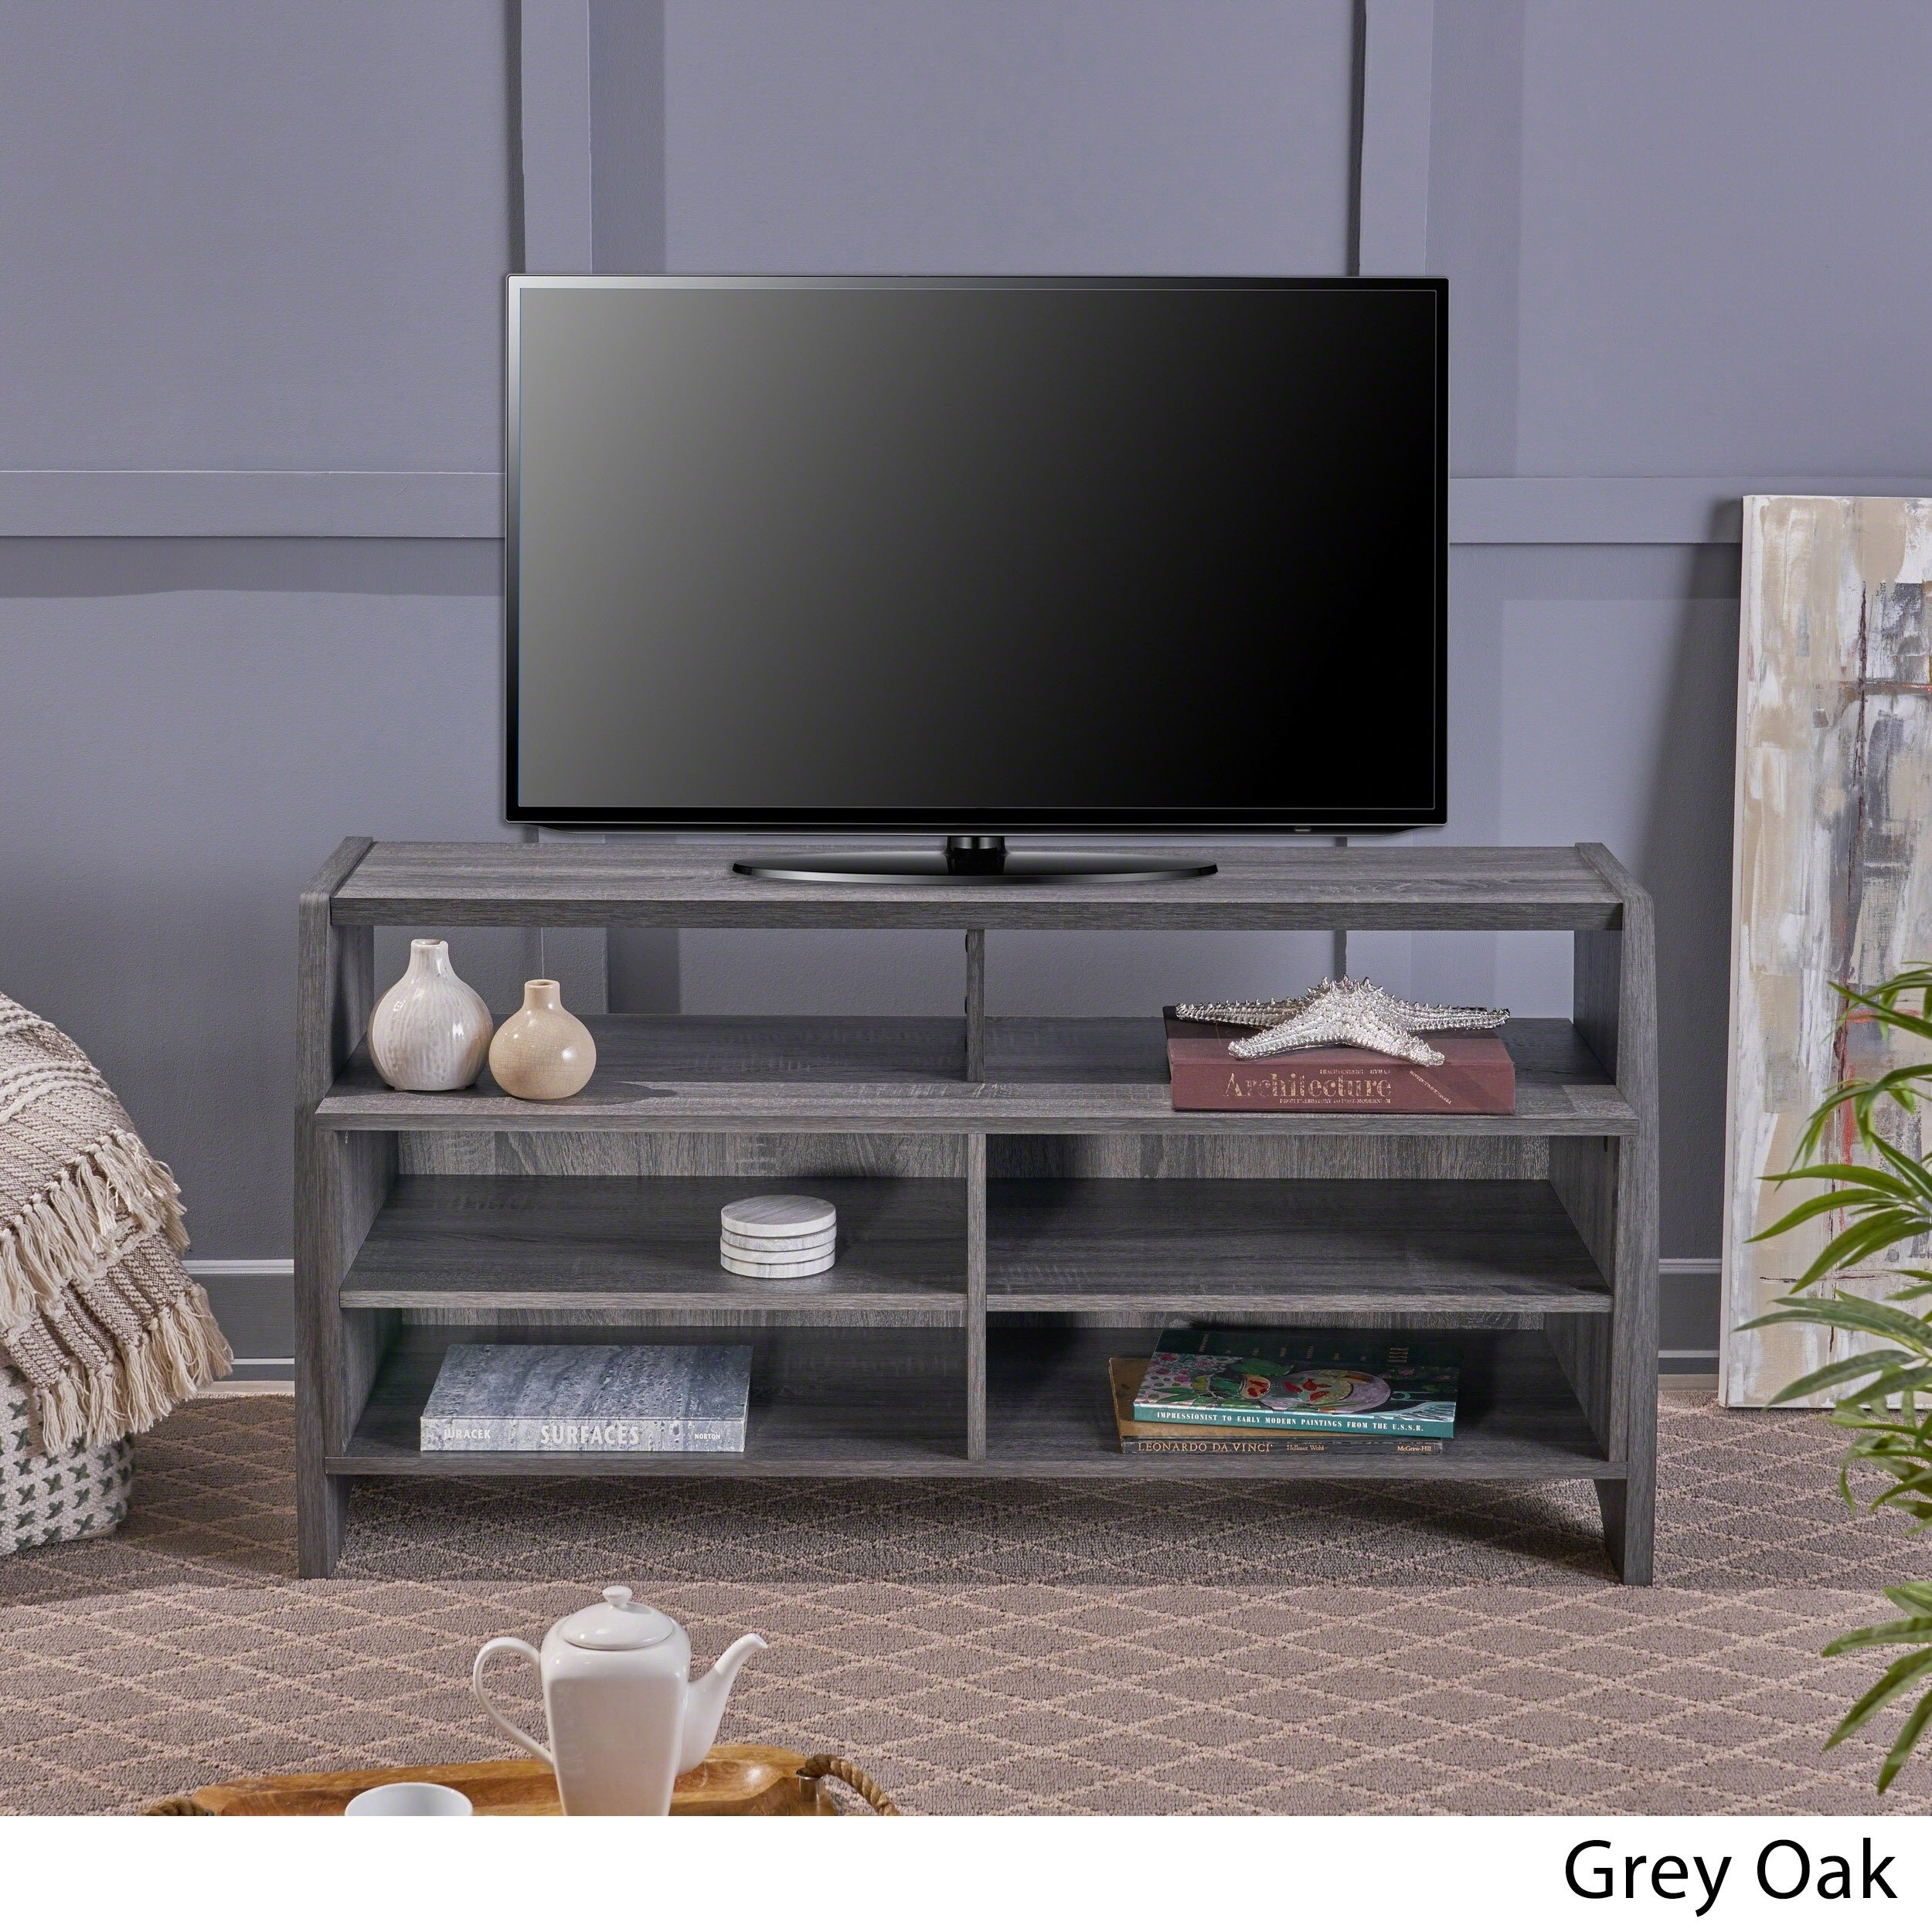 Buy Grey, 42 - 60 Inches Tv Stands & Entertainment Centers Online At intended for Rowan 64 Inch Tv Stands (Image 7 of 30)